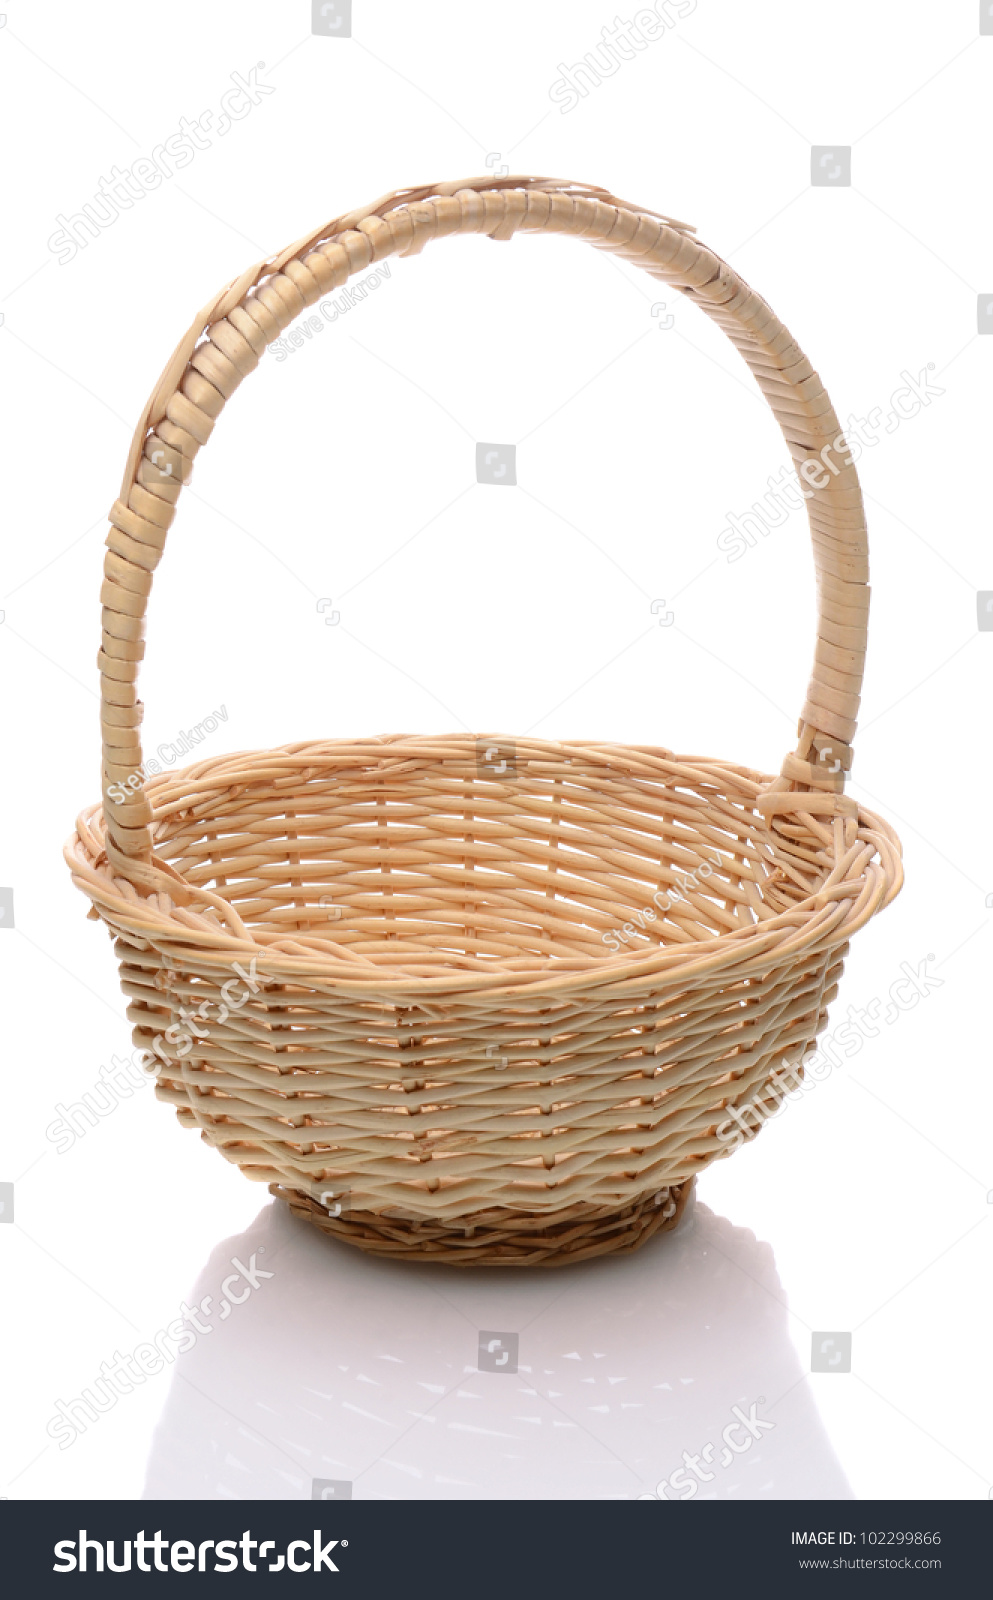 White wicker baskets with handle - Round Wicker Basket With Handle Isolated On A White Background With Slight Reflection